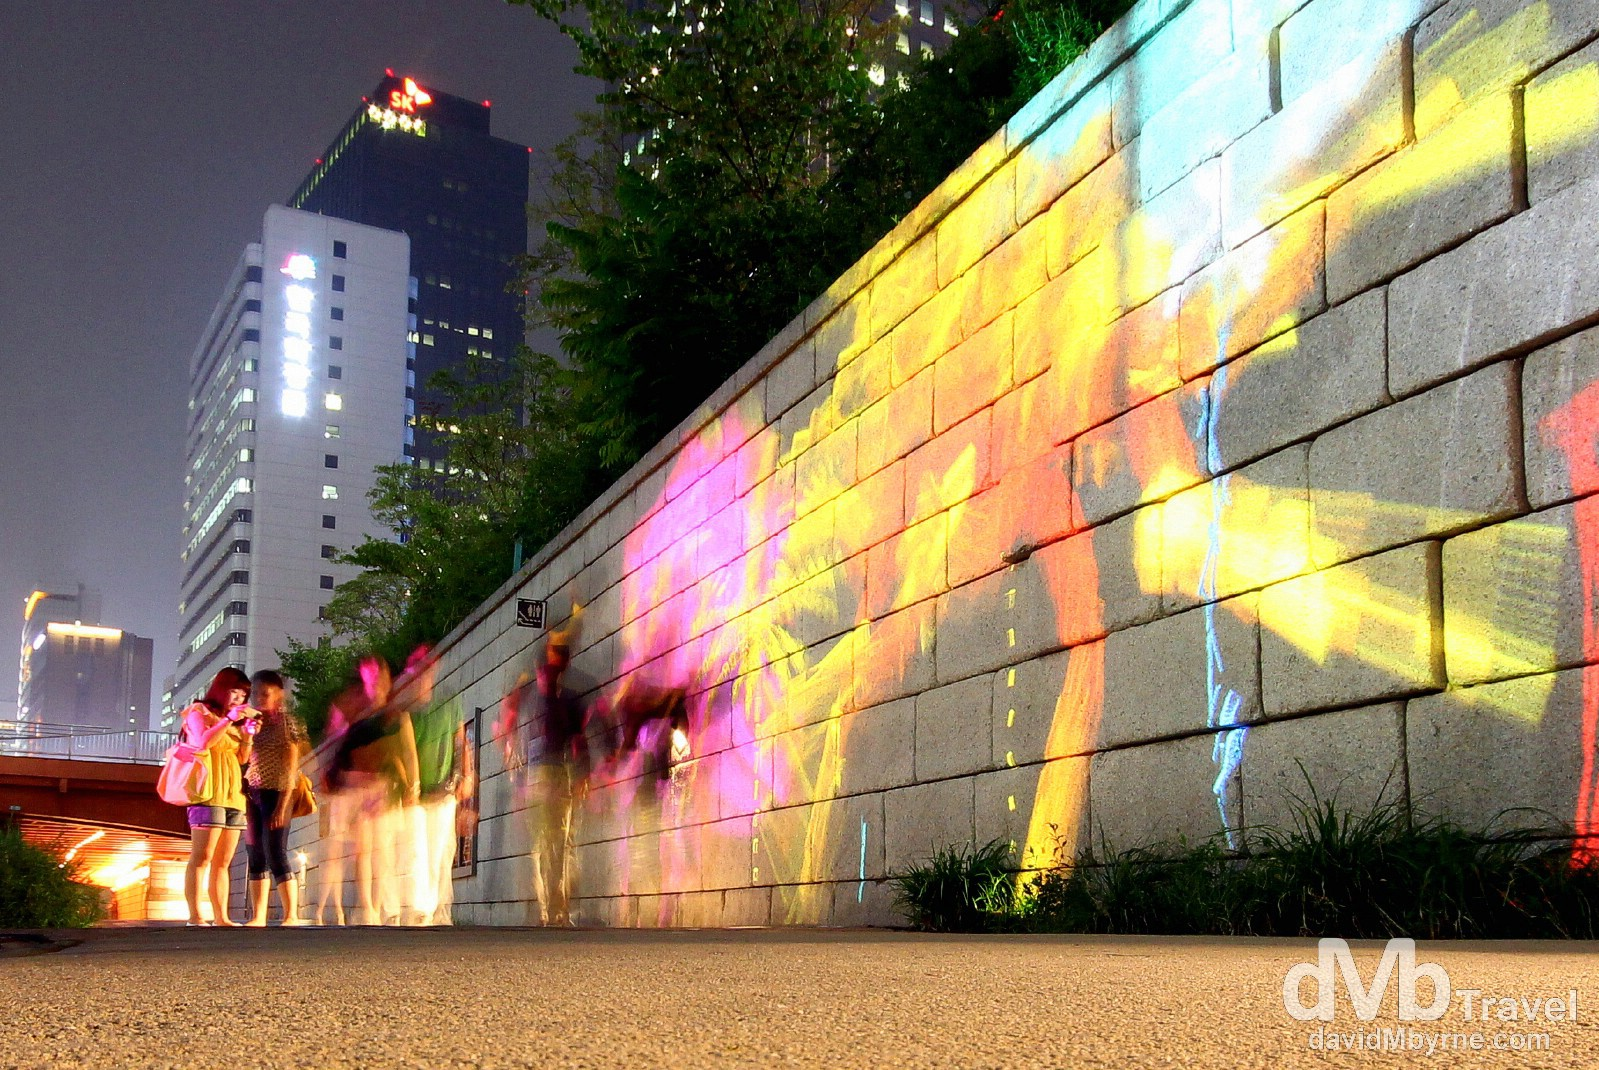 Light Show by the Cheonggyecheon Stream in Seoul, South Korea. July 12th 2012.